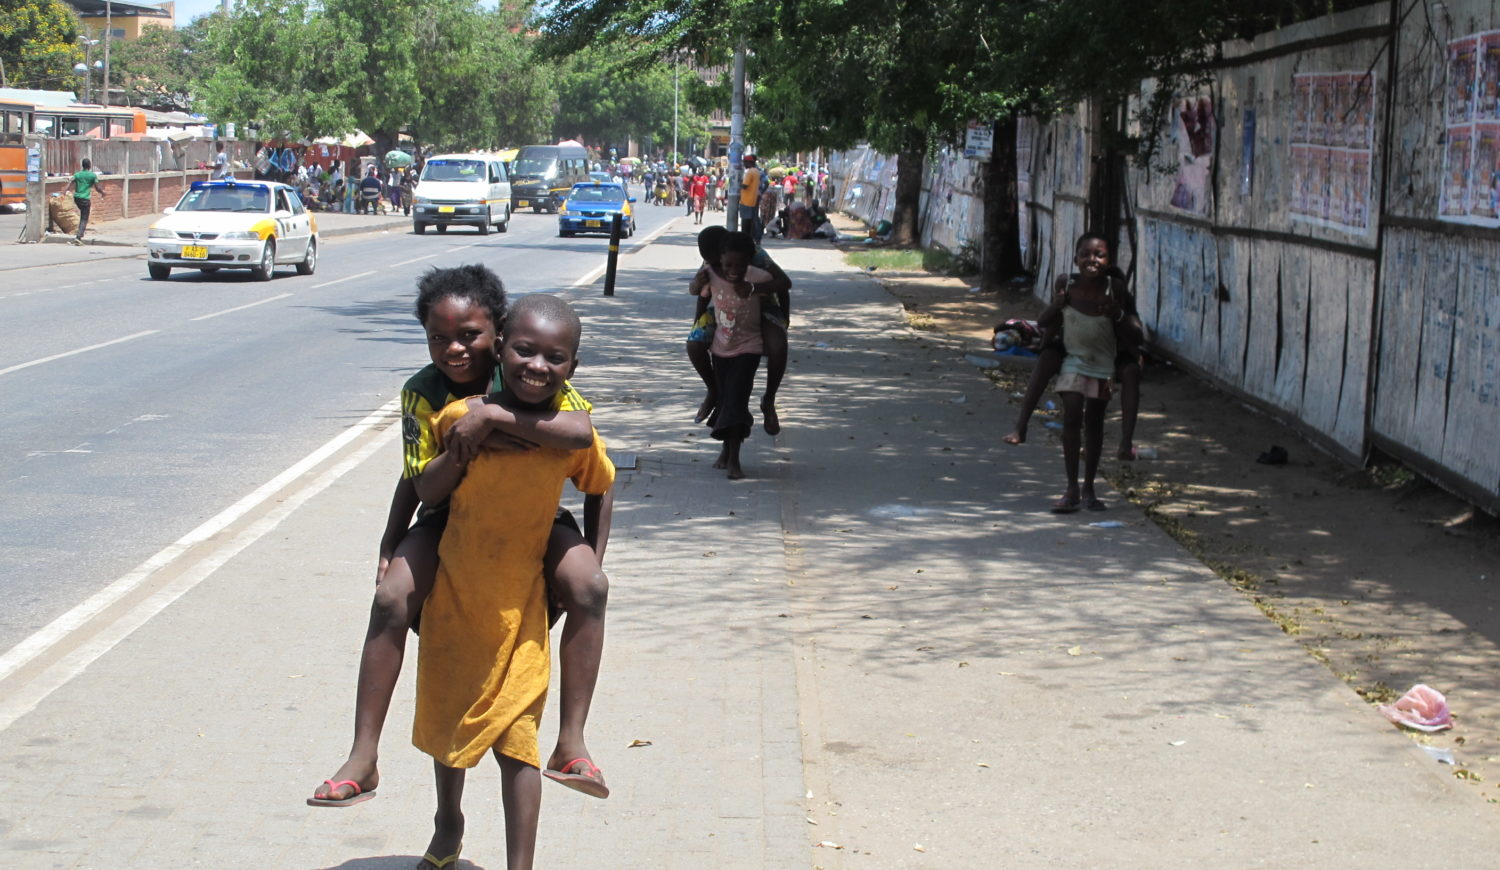 Six children playing piggyback with each other, walking down a street in Accra